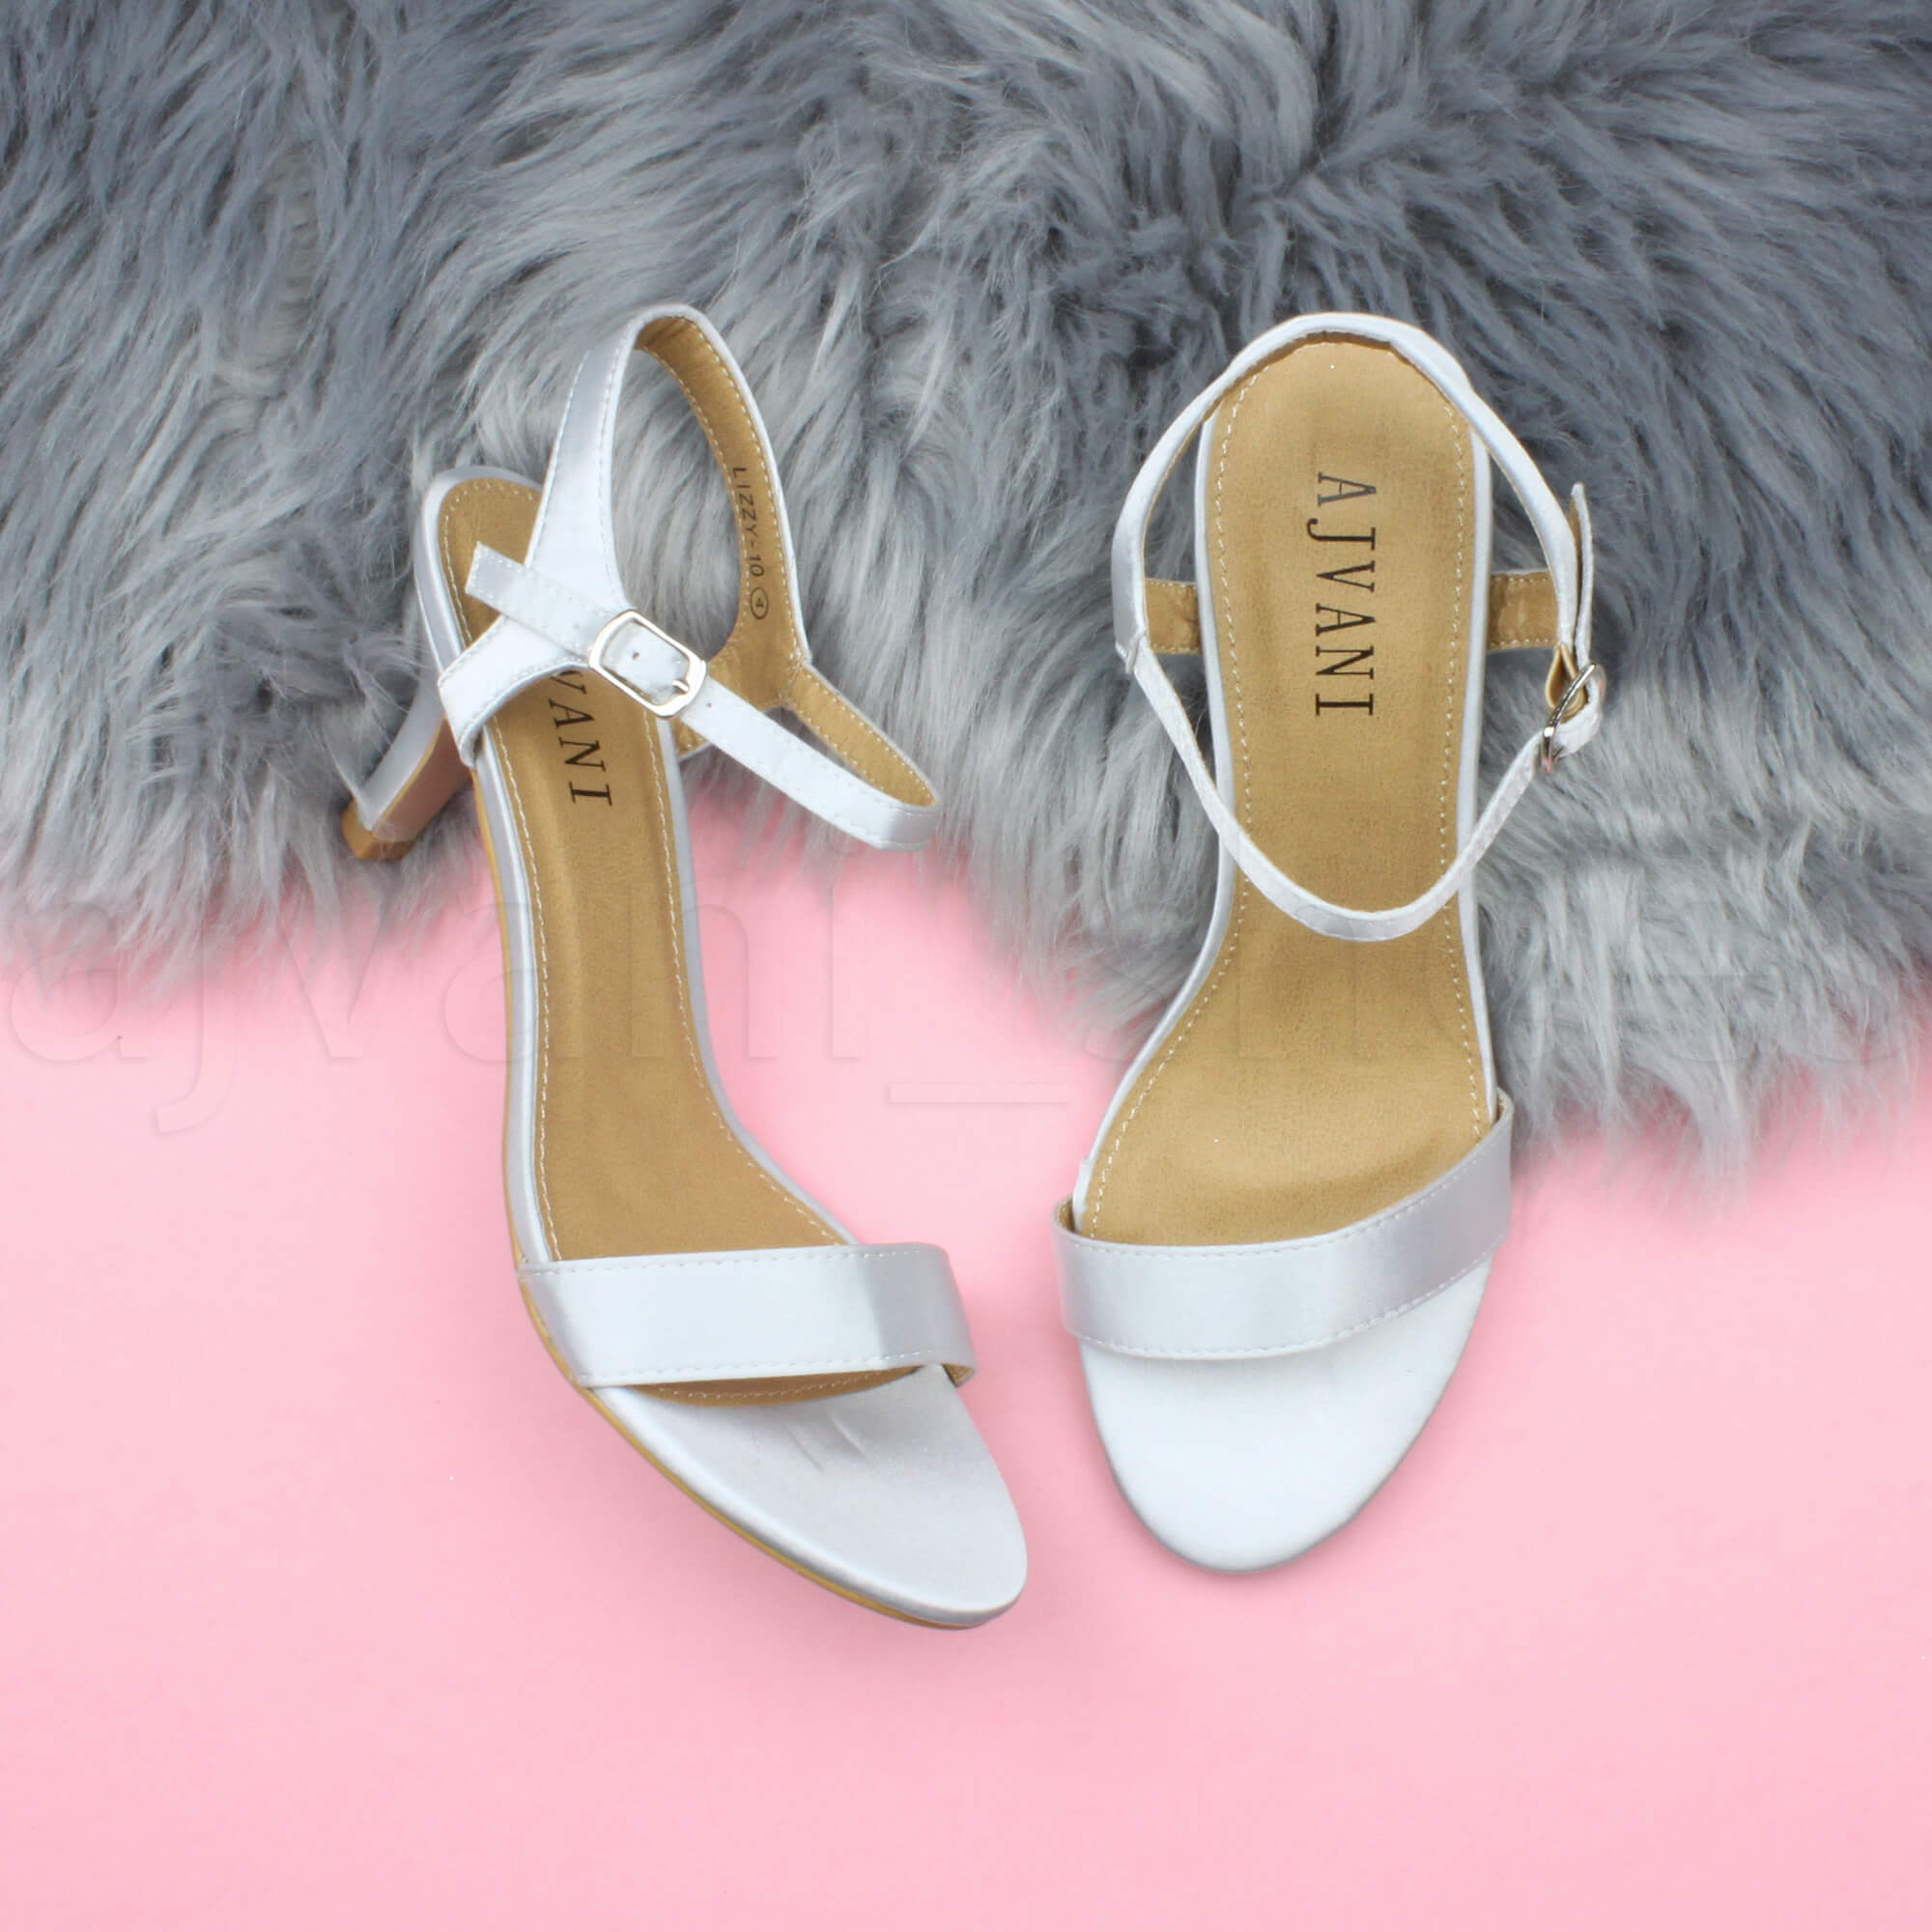 WOMENS-LADIES-HIGH-HEEL-BUCKLE-STRAPPY-BASIC-BARELY-THERE-SANDALS-SHOES-SIZE thumbnail 138